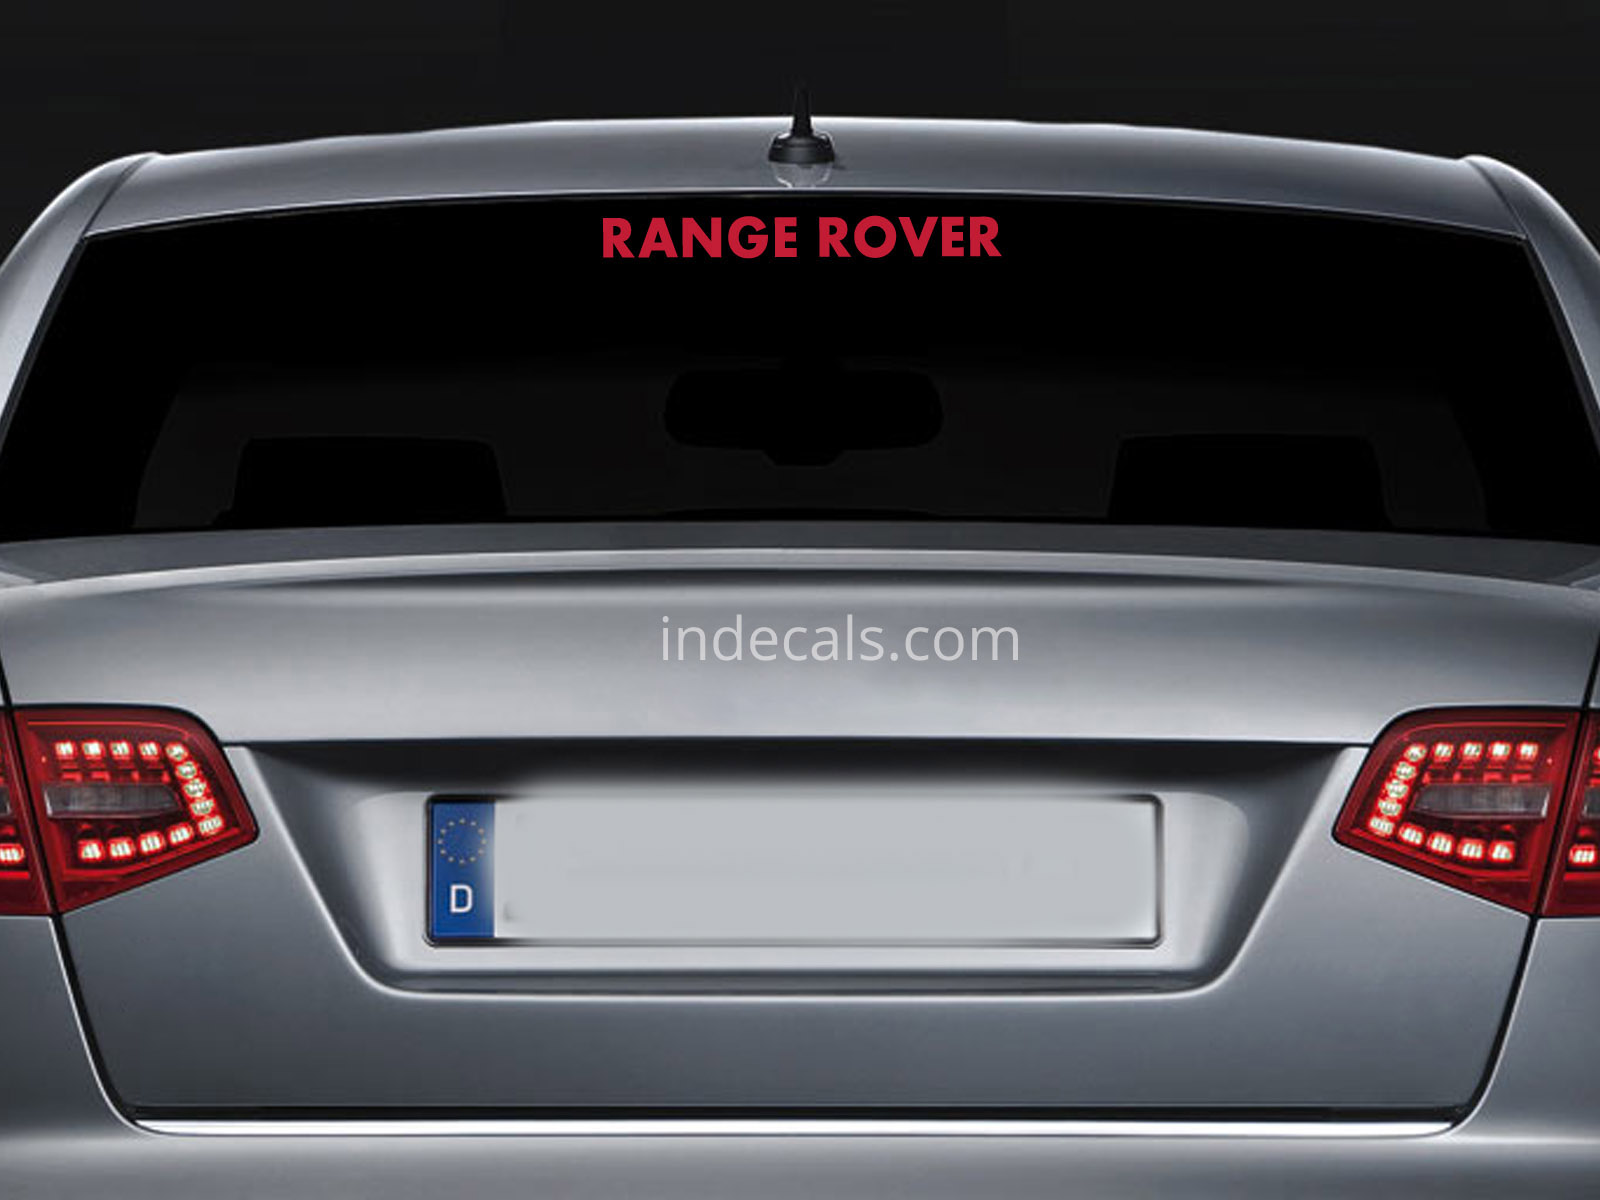 1 x Range Rover Sticker for Windshield or Back Window - Red